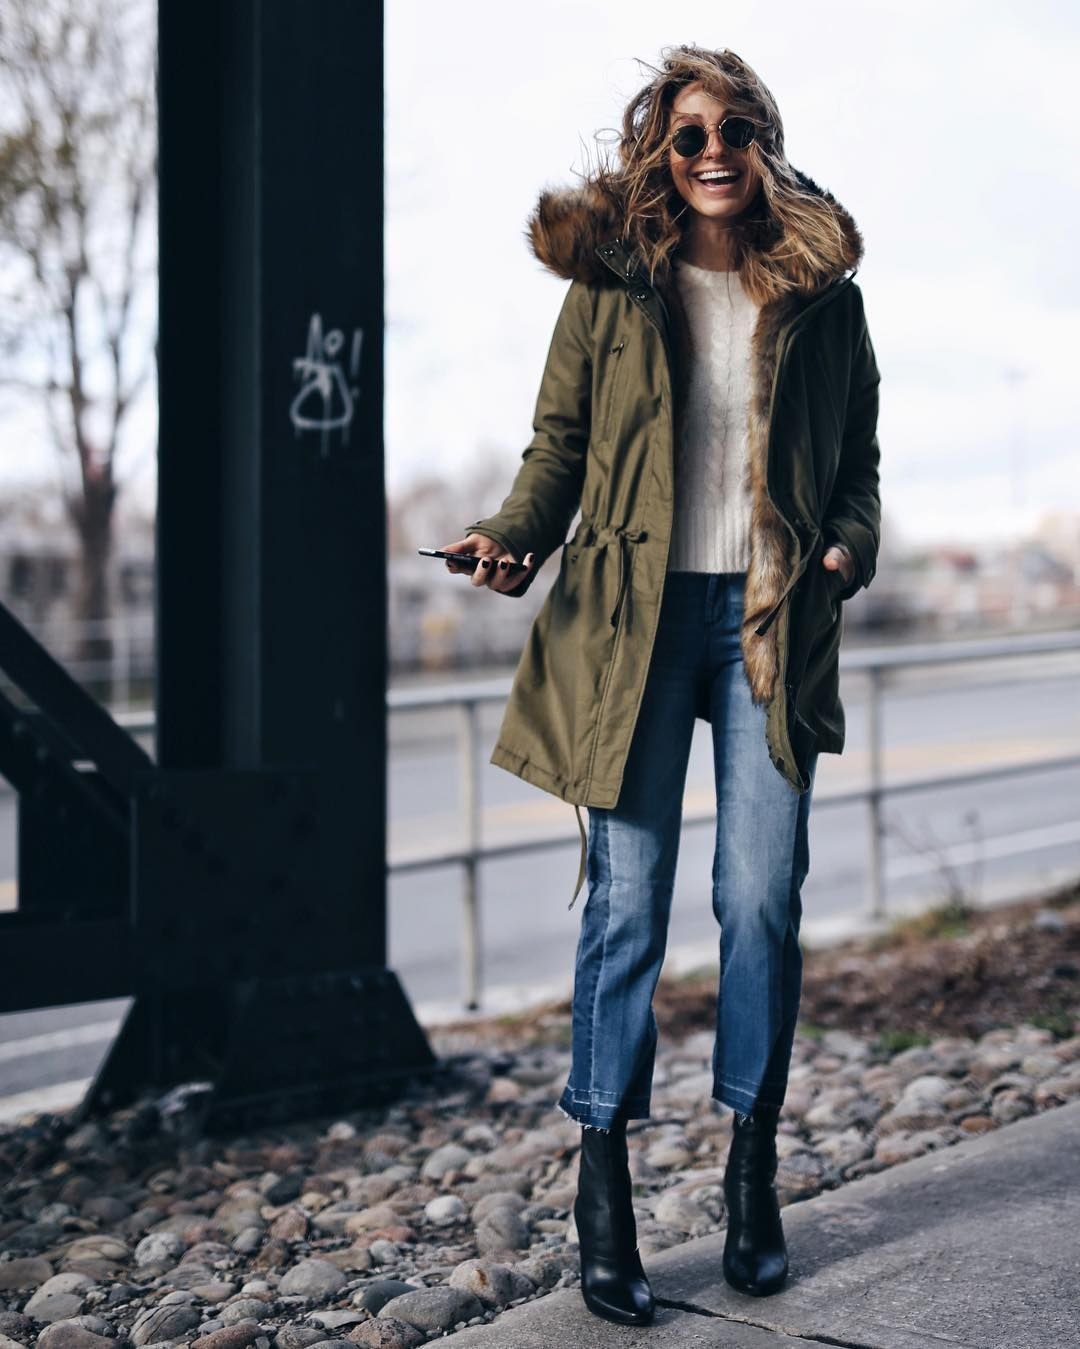 735db18361 Utility army olive green jacket jeans short black boots beige white sweater  jumper top casual outfit